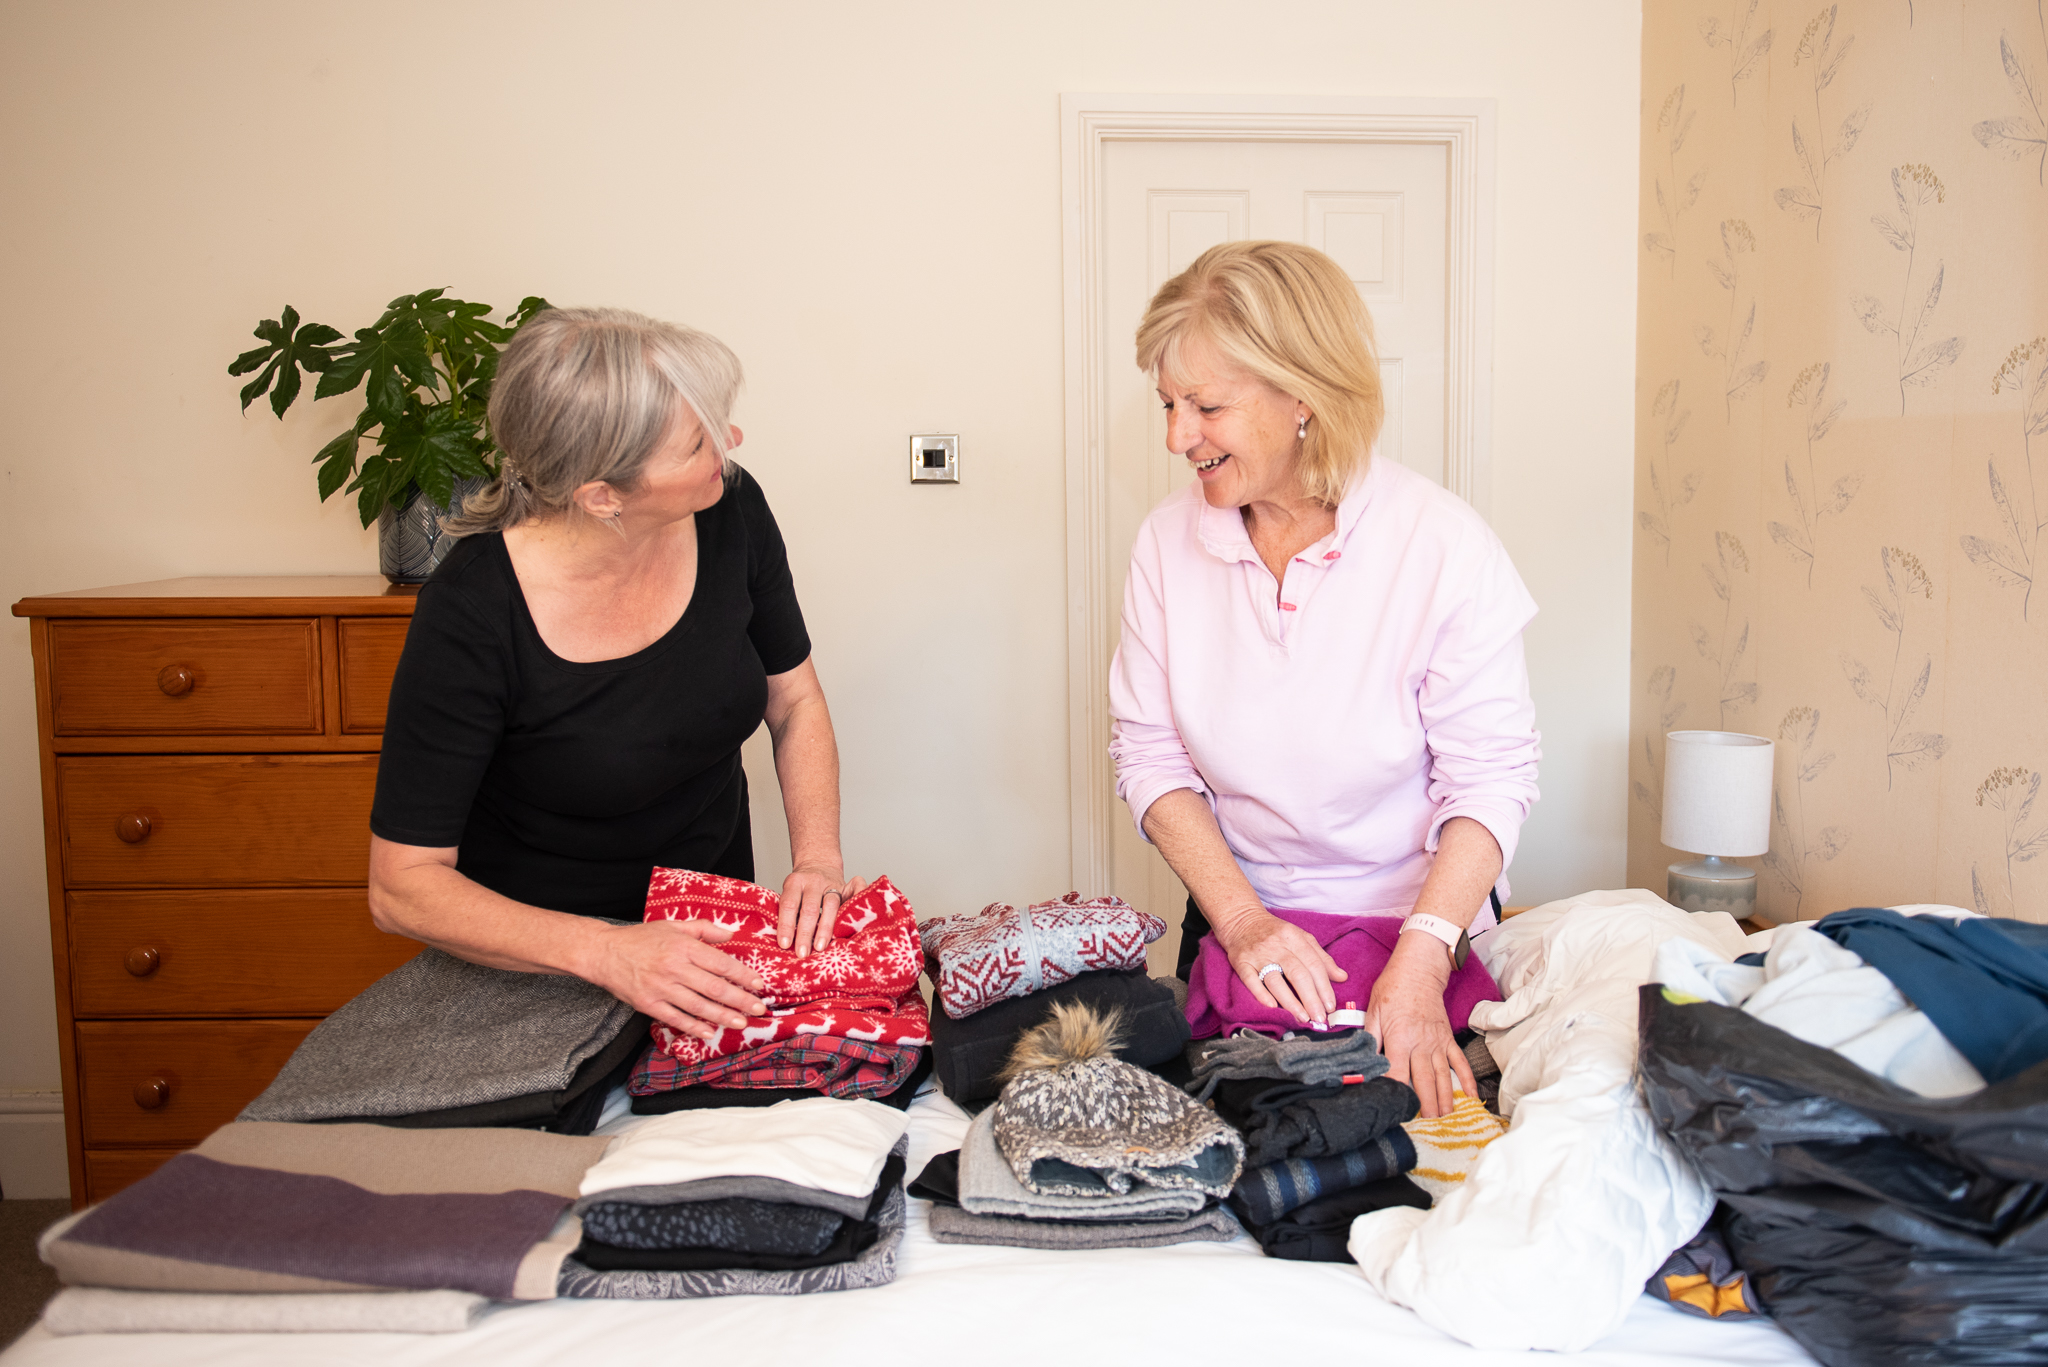 Professional decluttering services minimise the unnessary items cluttering your home